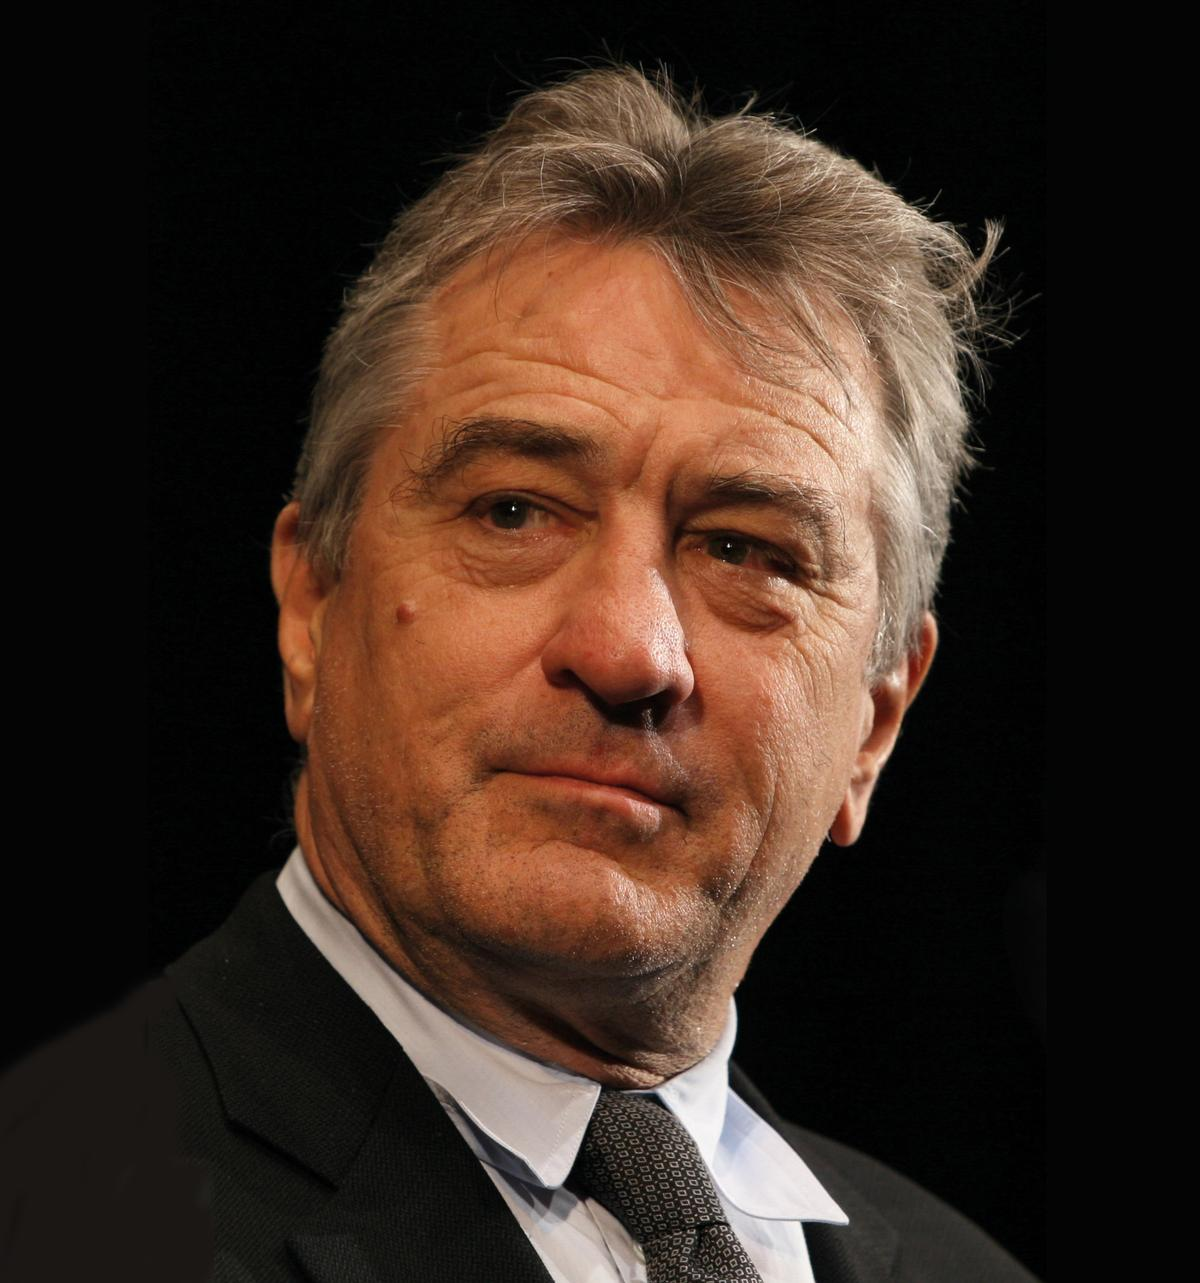 De Niro has described London as 'one of the most exciting and cosmopolitan cities in the world' / Petr Novák, Wikipedia